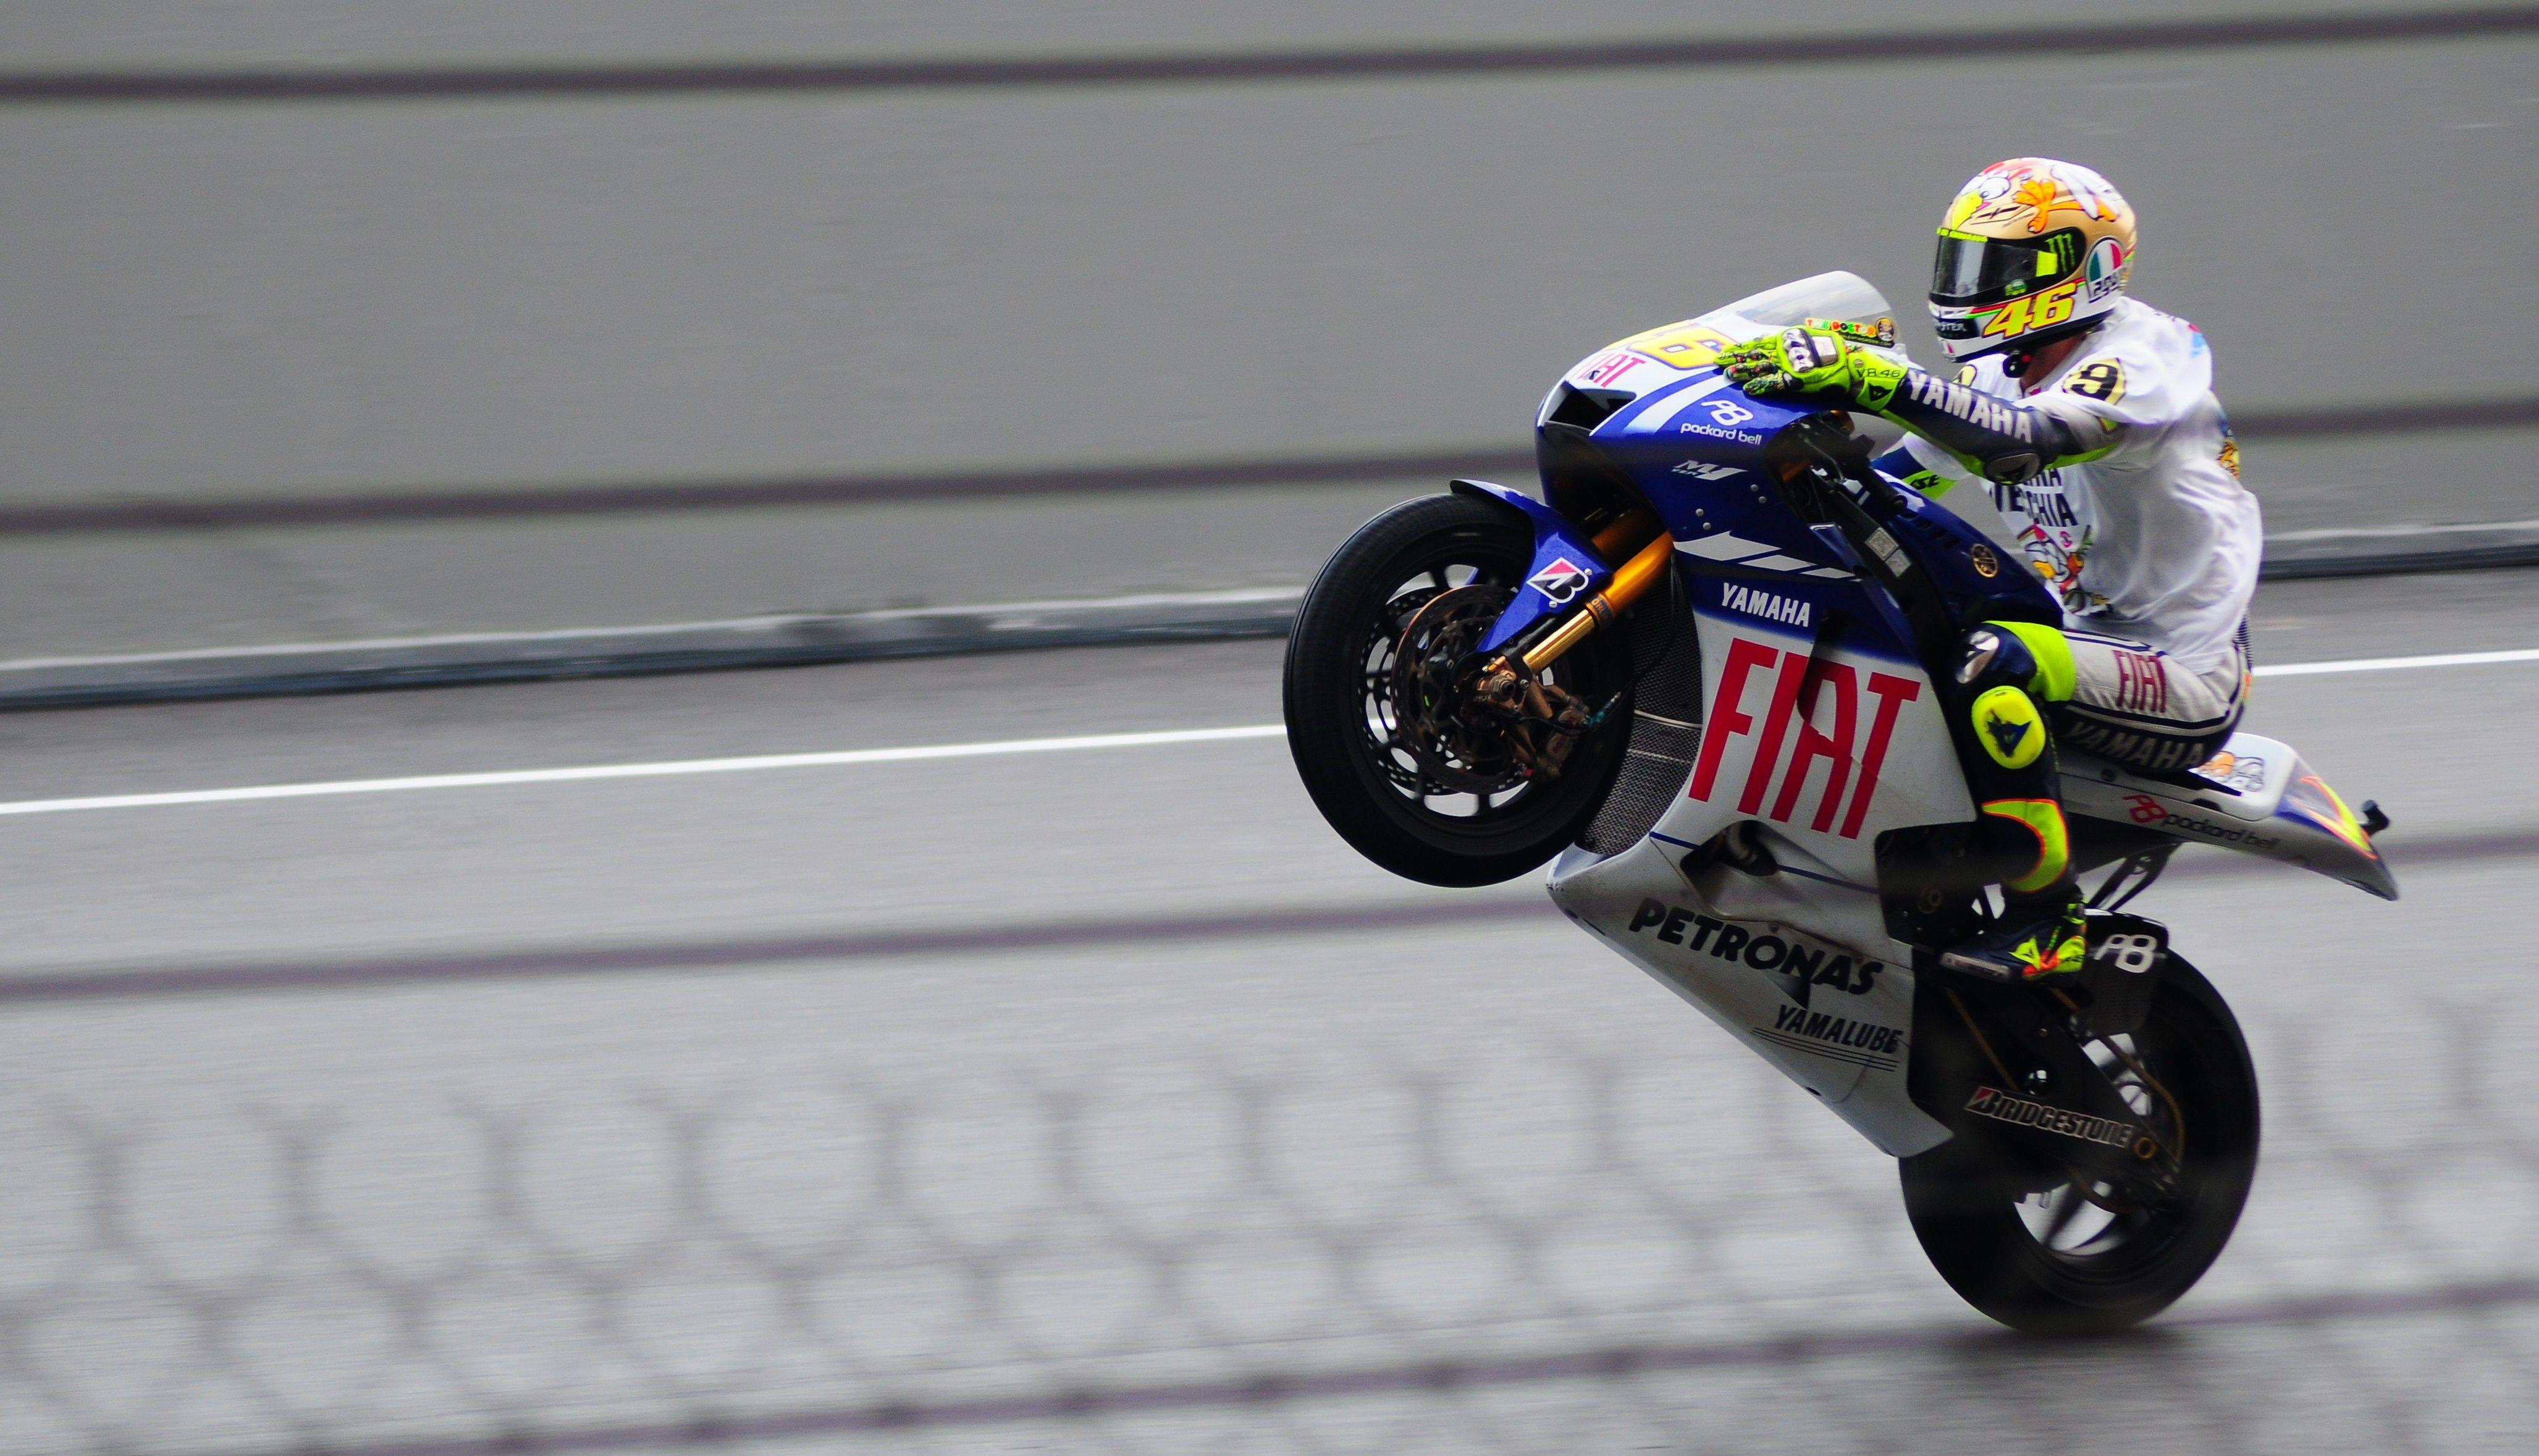 valentino rossi images - Google Search | Bikes and more Bikes ...